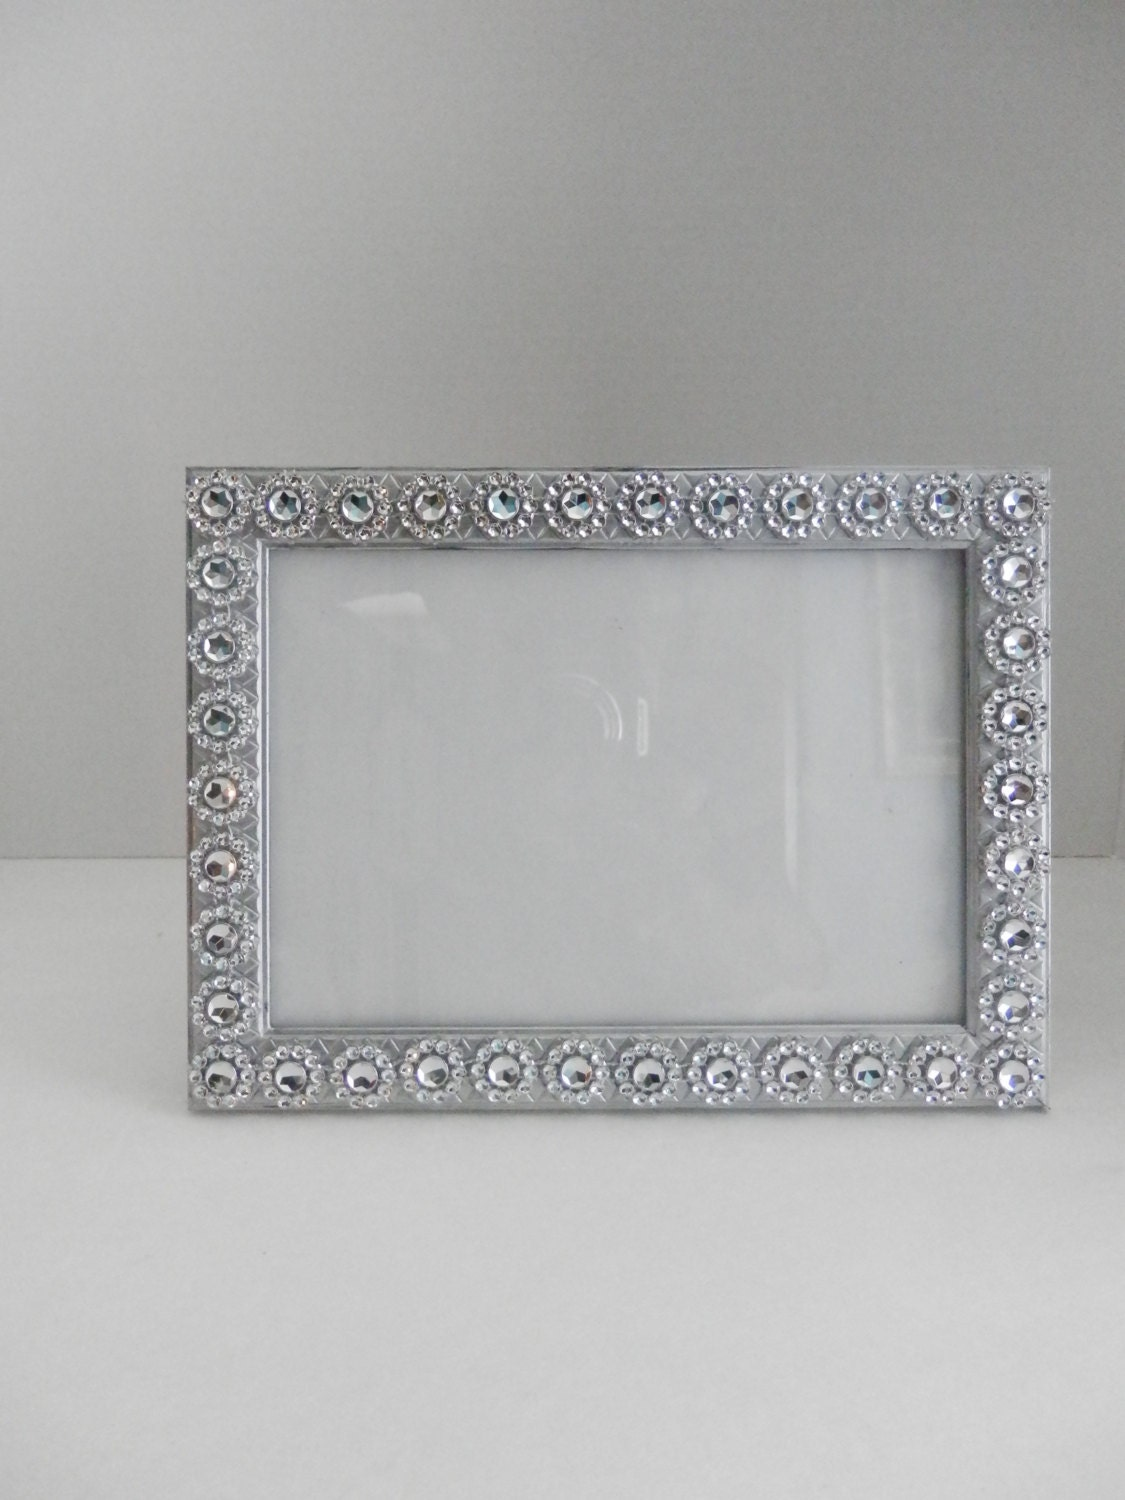 Wedding picture frame 5x7 and 4x6 silver wedding picture